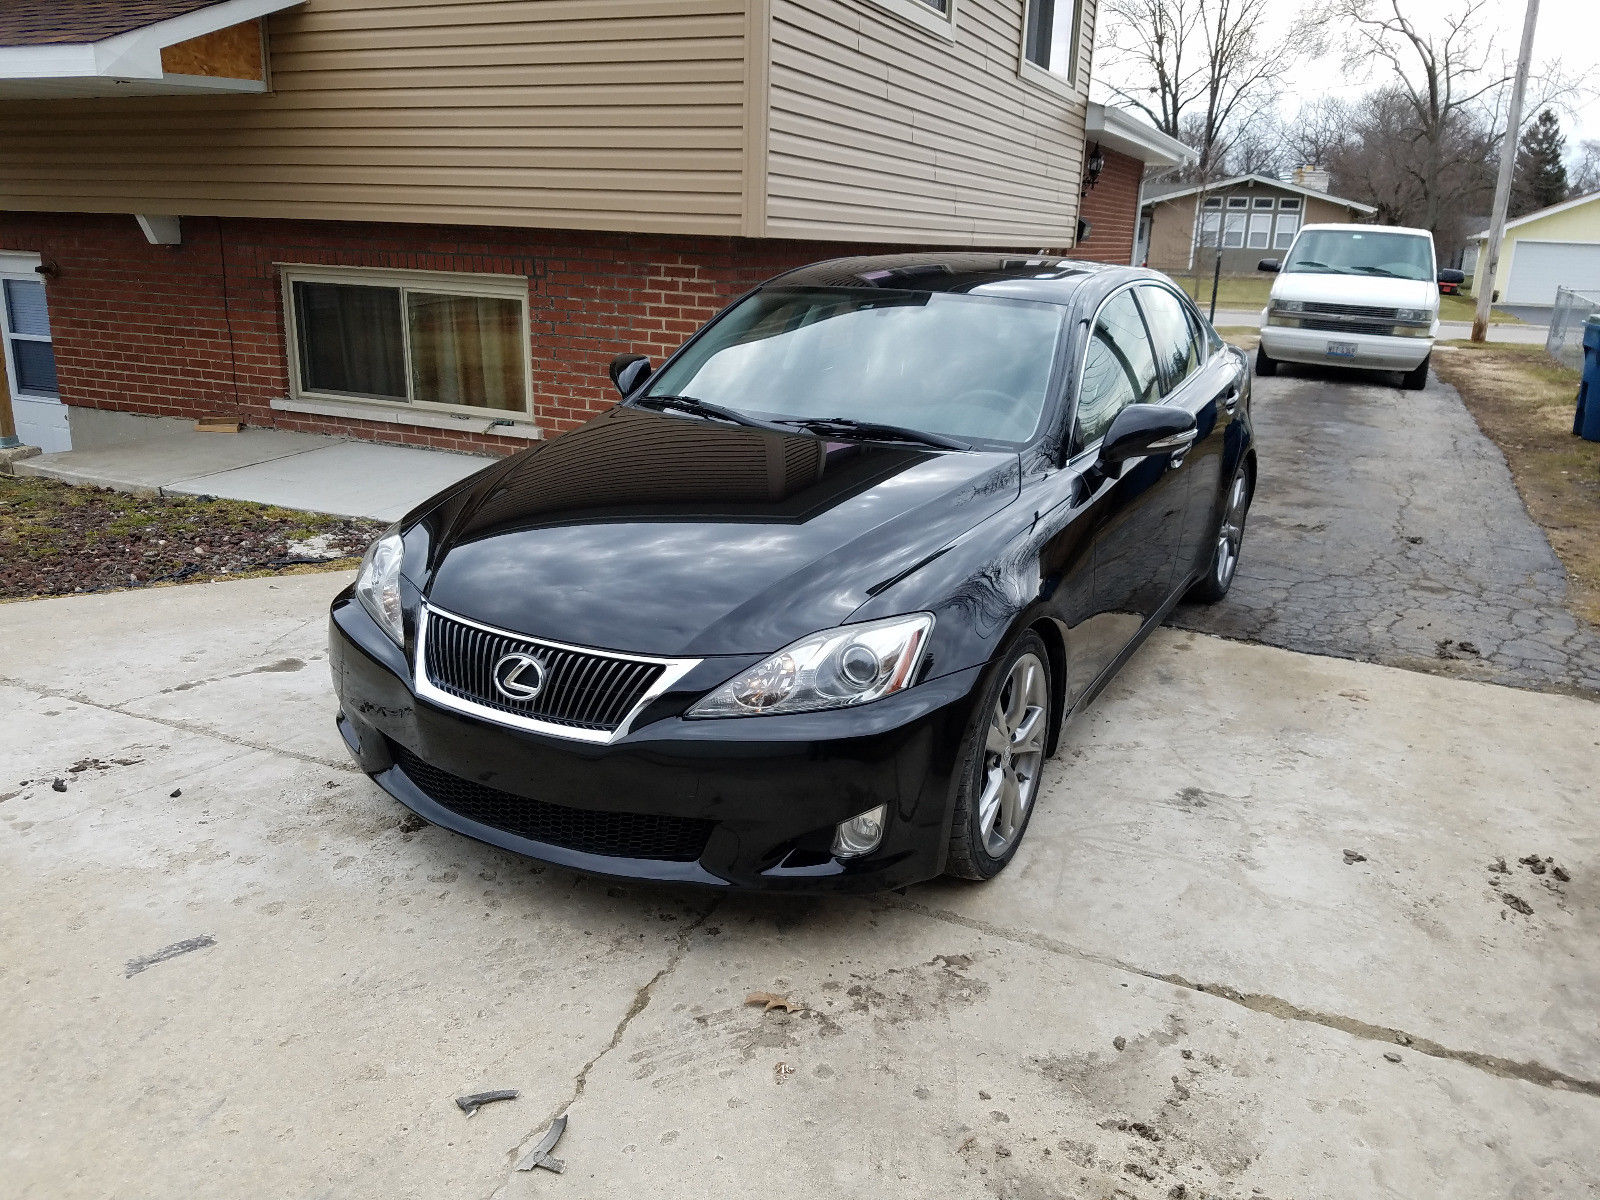 north view carfinder in is lexus sale on chicago certificate en lot salvage online copart blue left auctions il auto